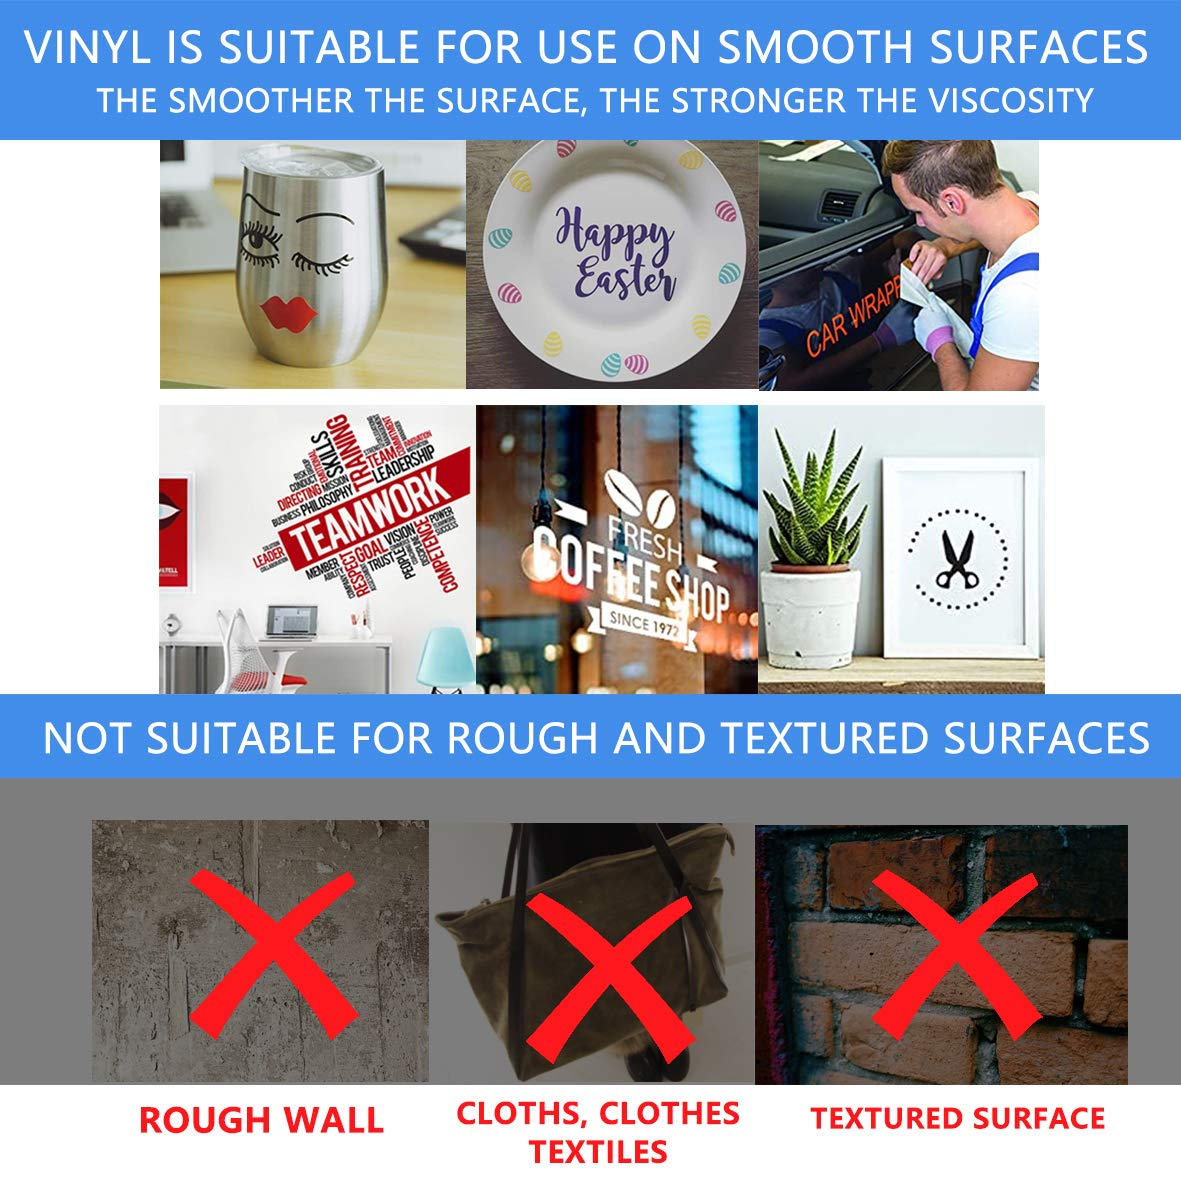 21Pack Permanent Self Adhesive Vinyl Sheets 12 x 12 inchs,21Assorted Color Sheets for Home Decor, Logo, Letters, Banners, Window Graphics.